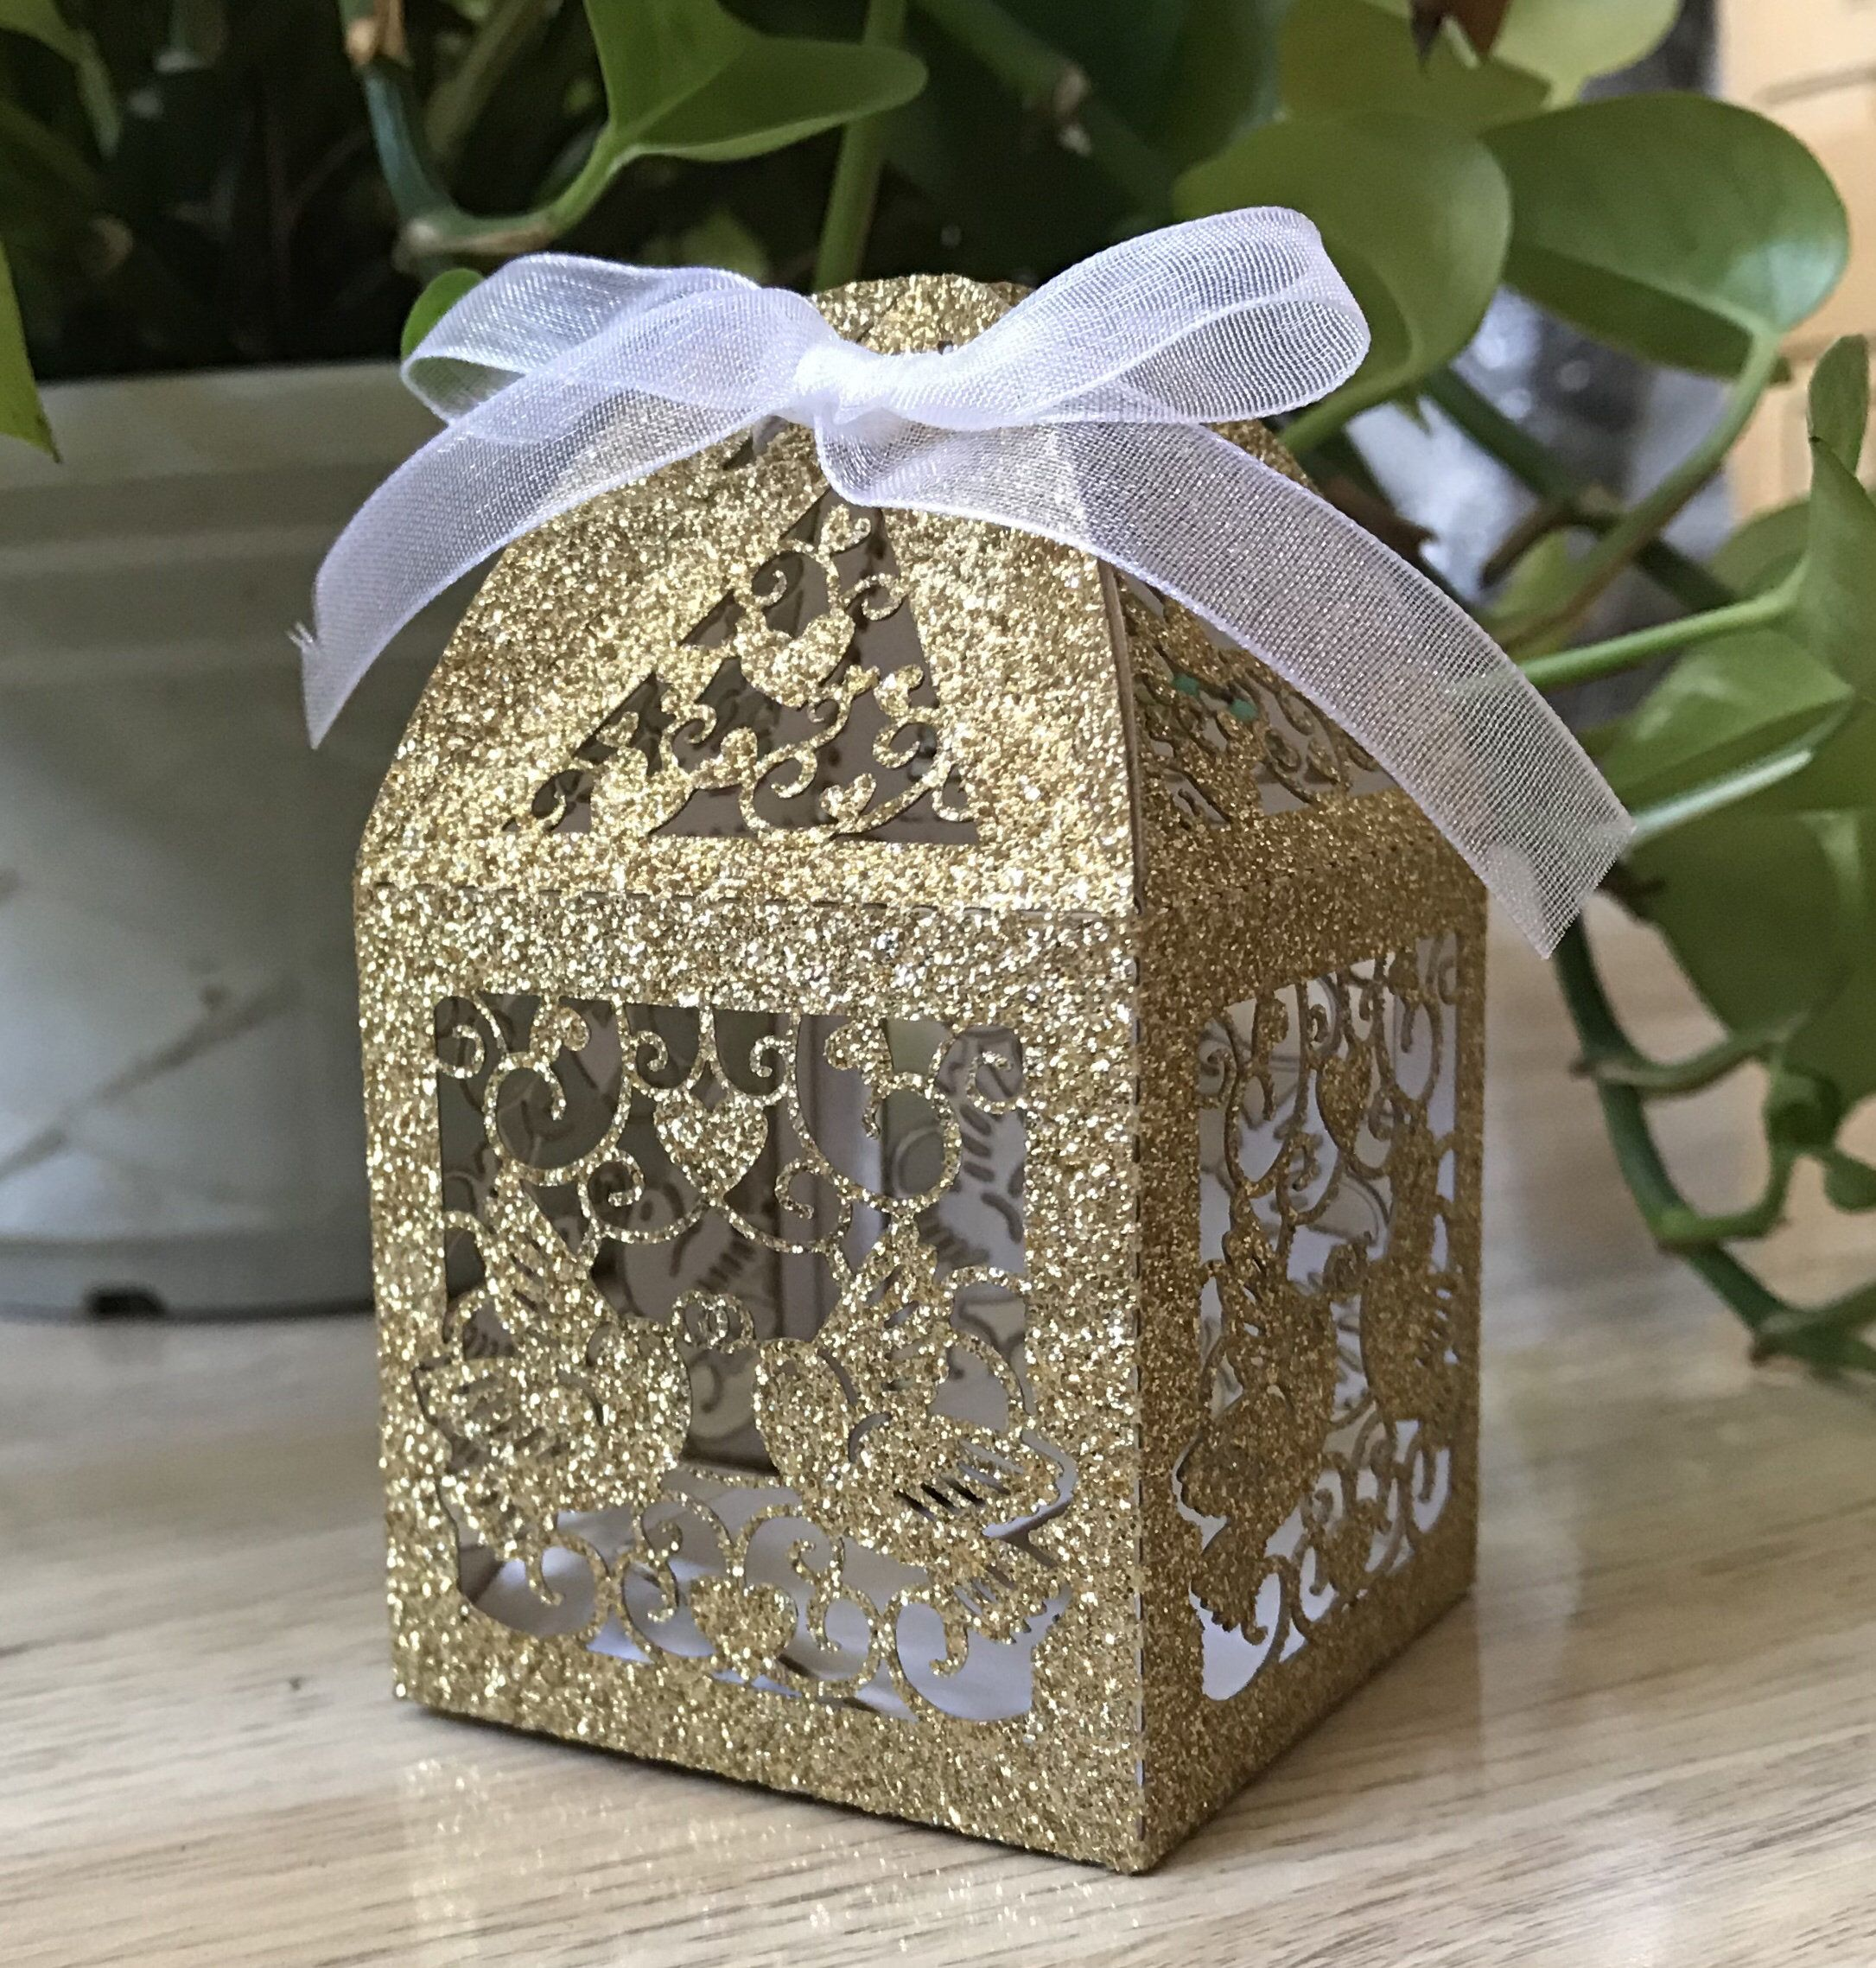 100pcs Glitter Gold Wedding Bonbonniere,Wedding favor box with ribbon,Personalized Wedding favors,candy boxes for guests,Laser Cut Gift Box #personalizedweddingfavors